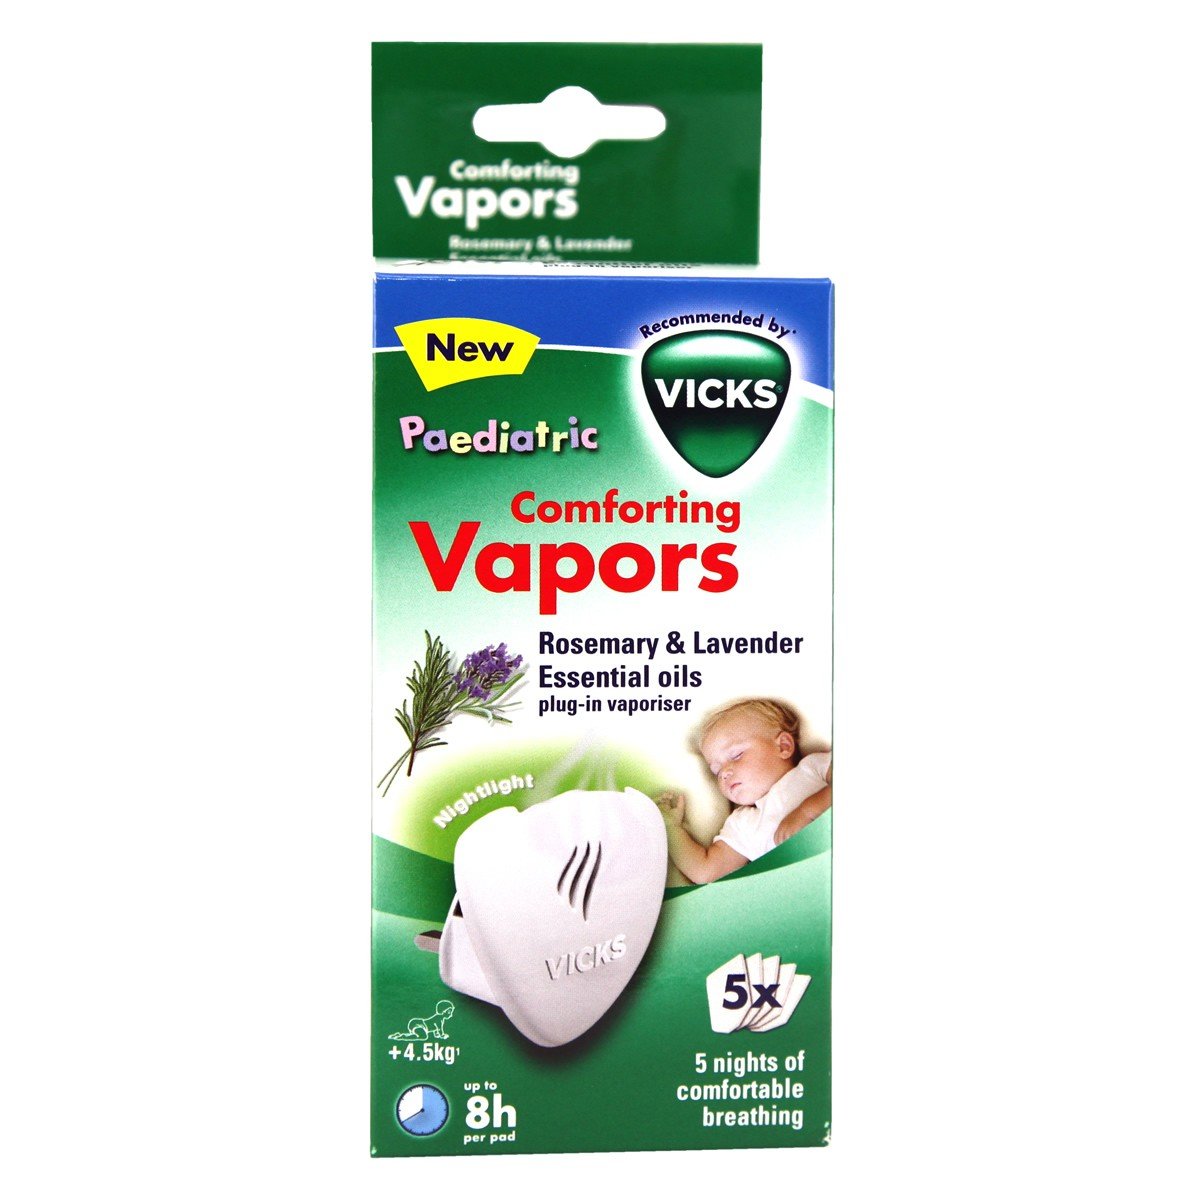 Vicks Paedriatic Comforting Vapors Rosemary & Lavender Essential Oils Plug-in Vapouriser